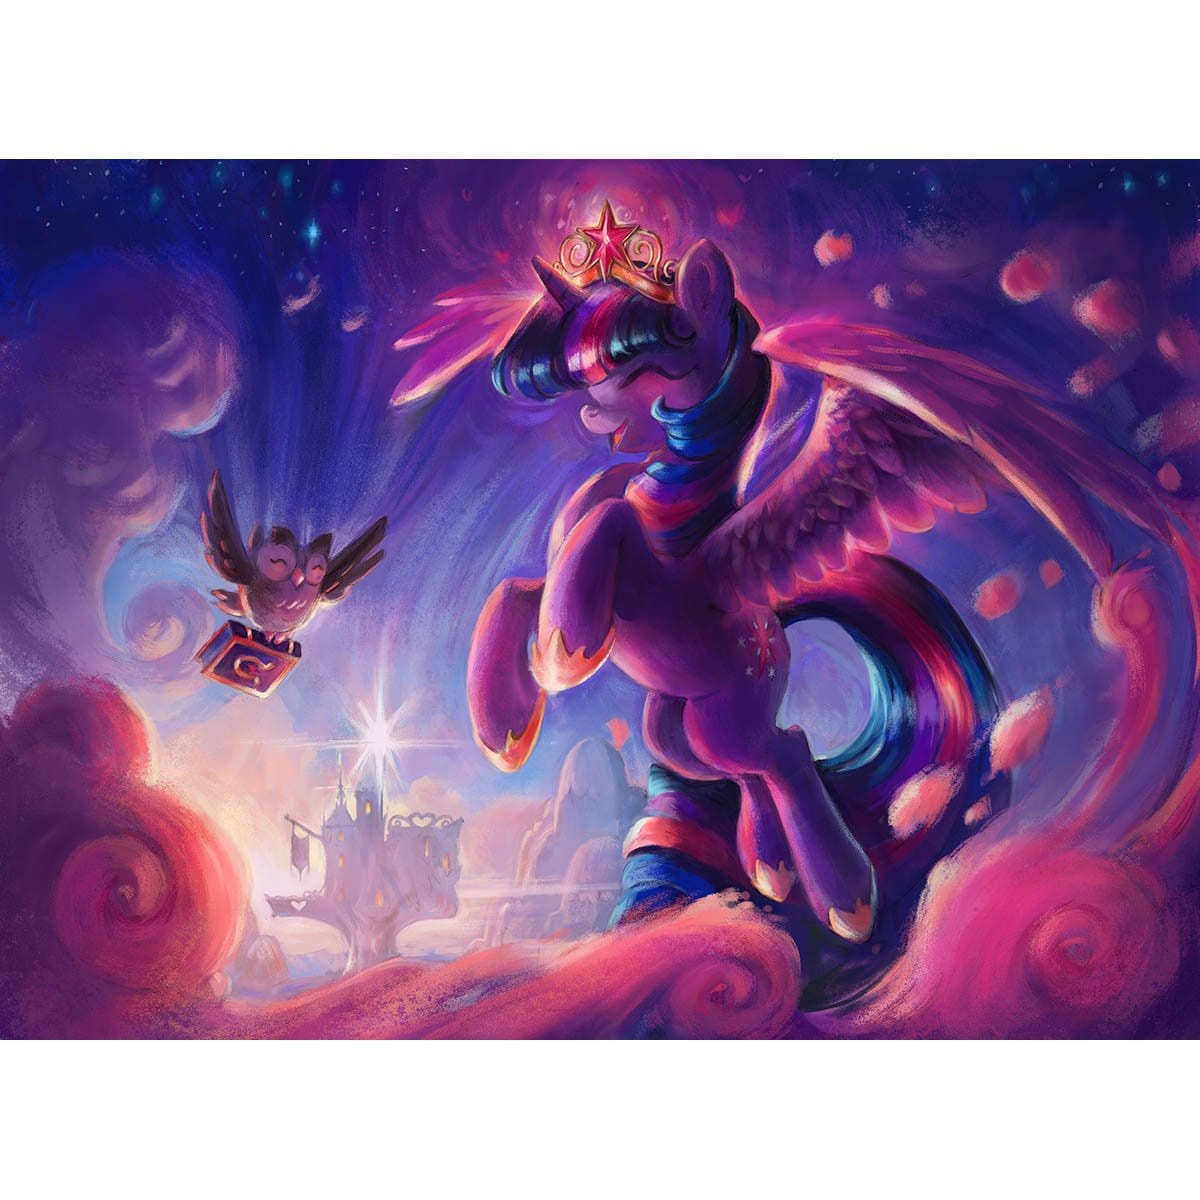 Princess Twilight Sparkle Print - Print - Original Magic Art - Accessories for Magic the Gathering and other card games